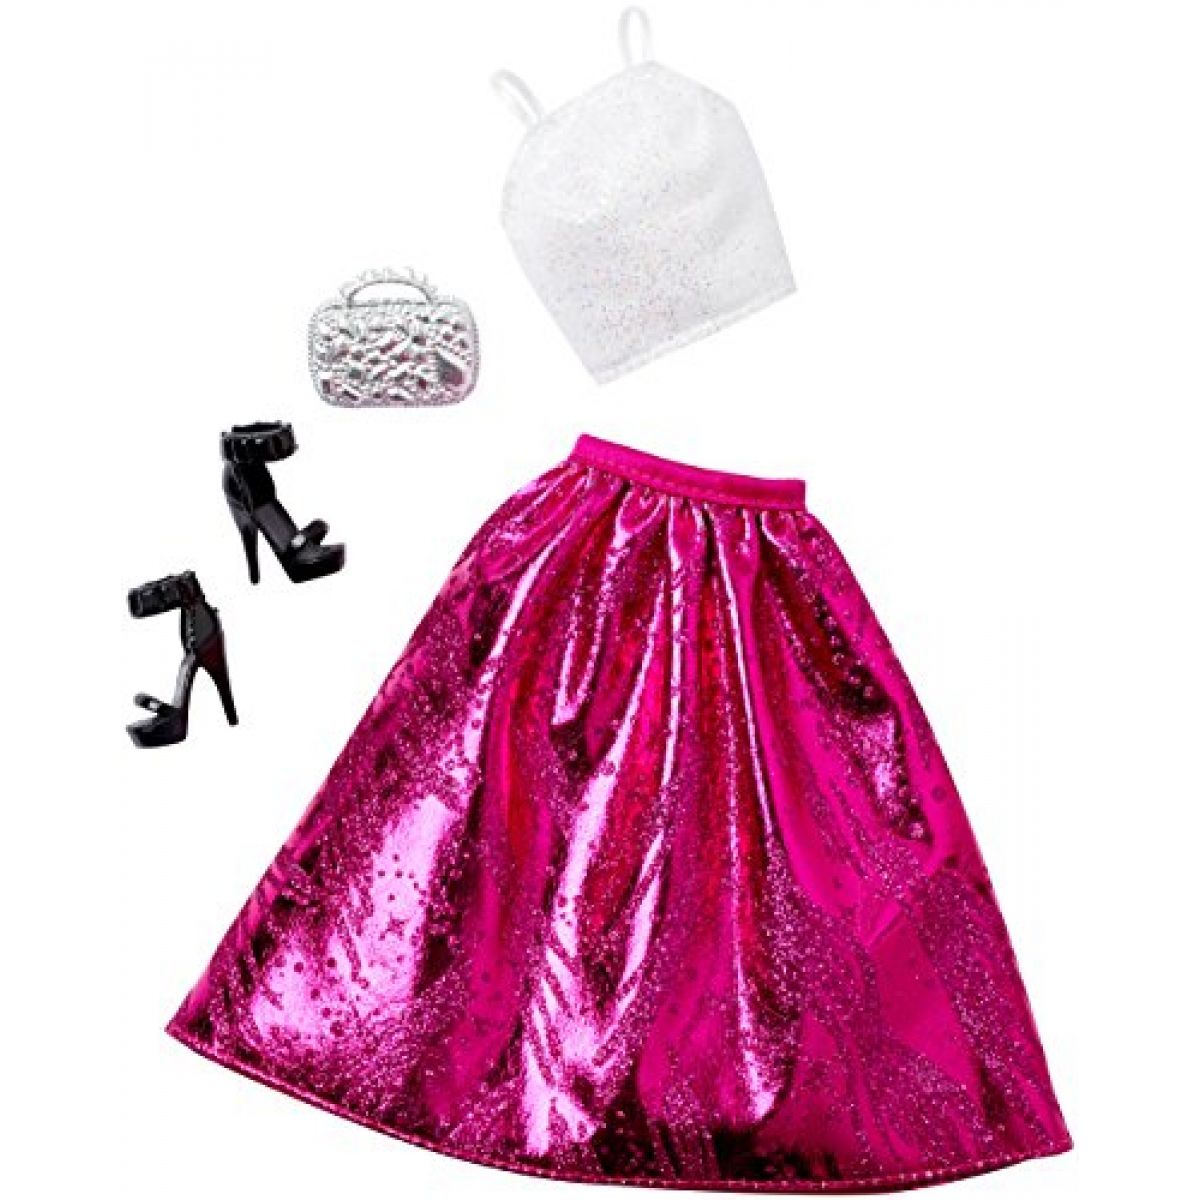 Barbie outfit s doplňky - DHC57